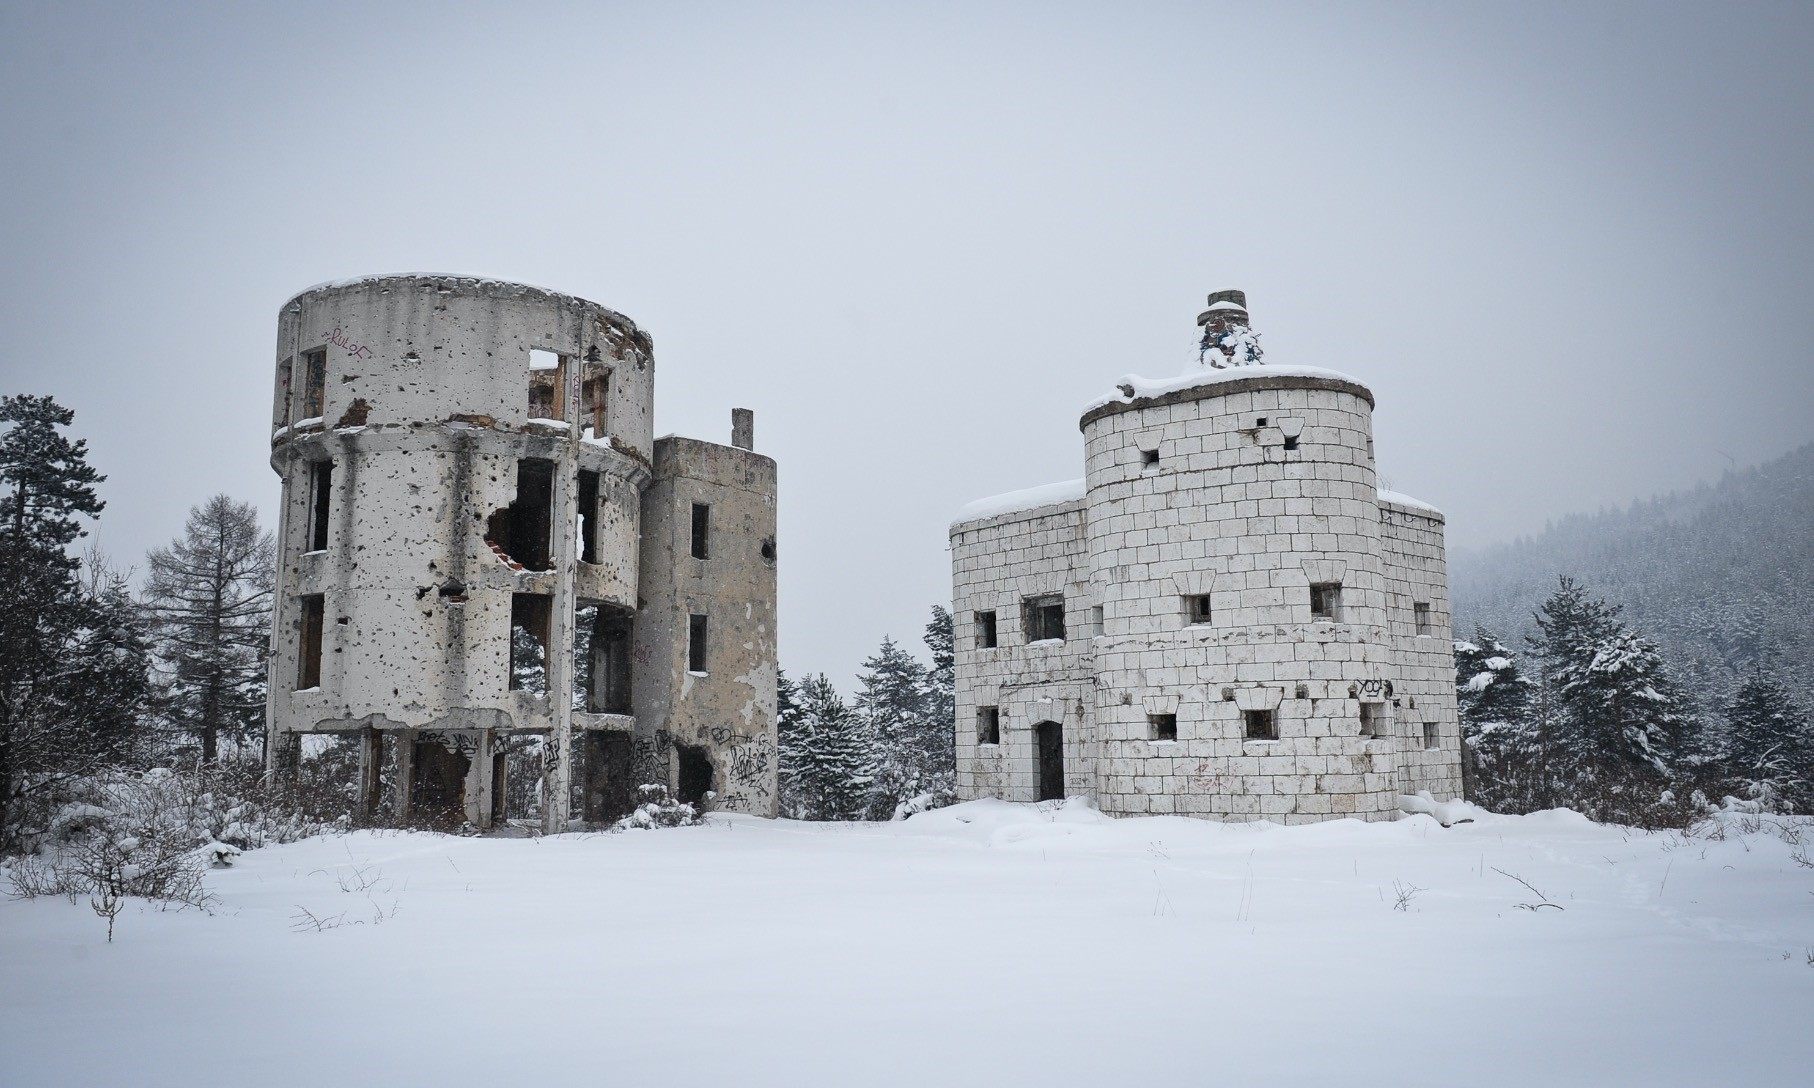 Colina Kapa Astronomical Observatory was once Bosniau2019s shining star in astronomy studies, but now, the building is empty, covered with bullet holes.